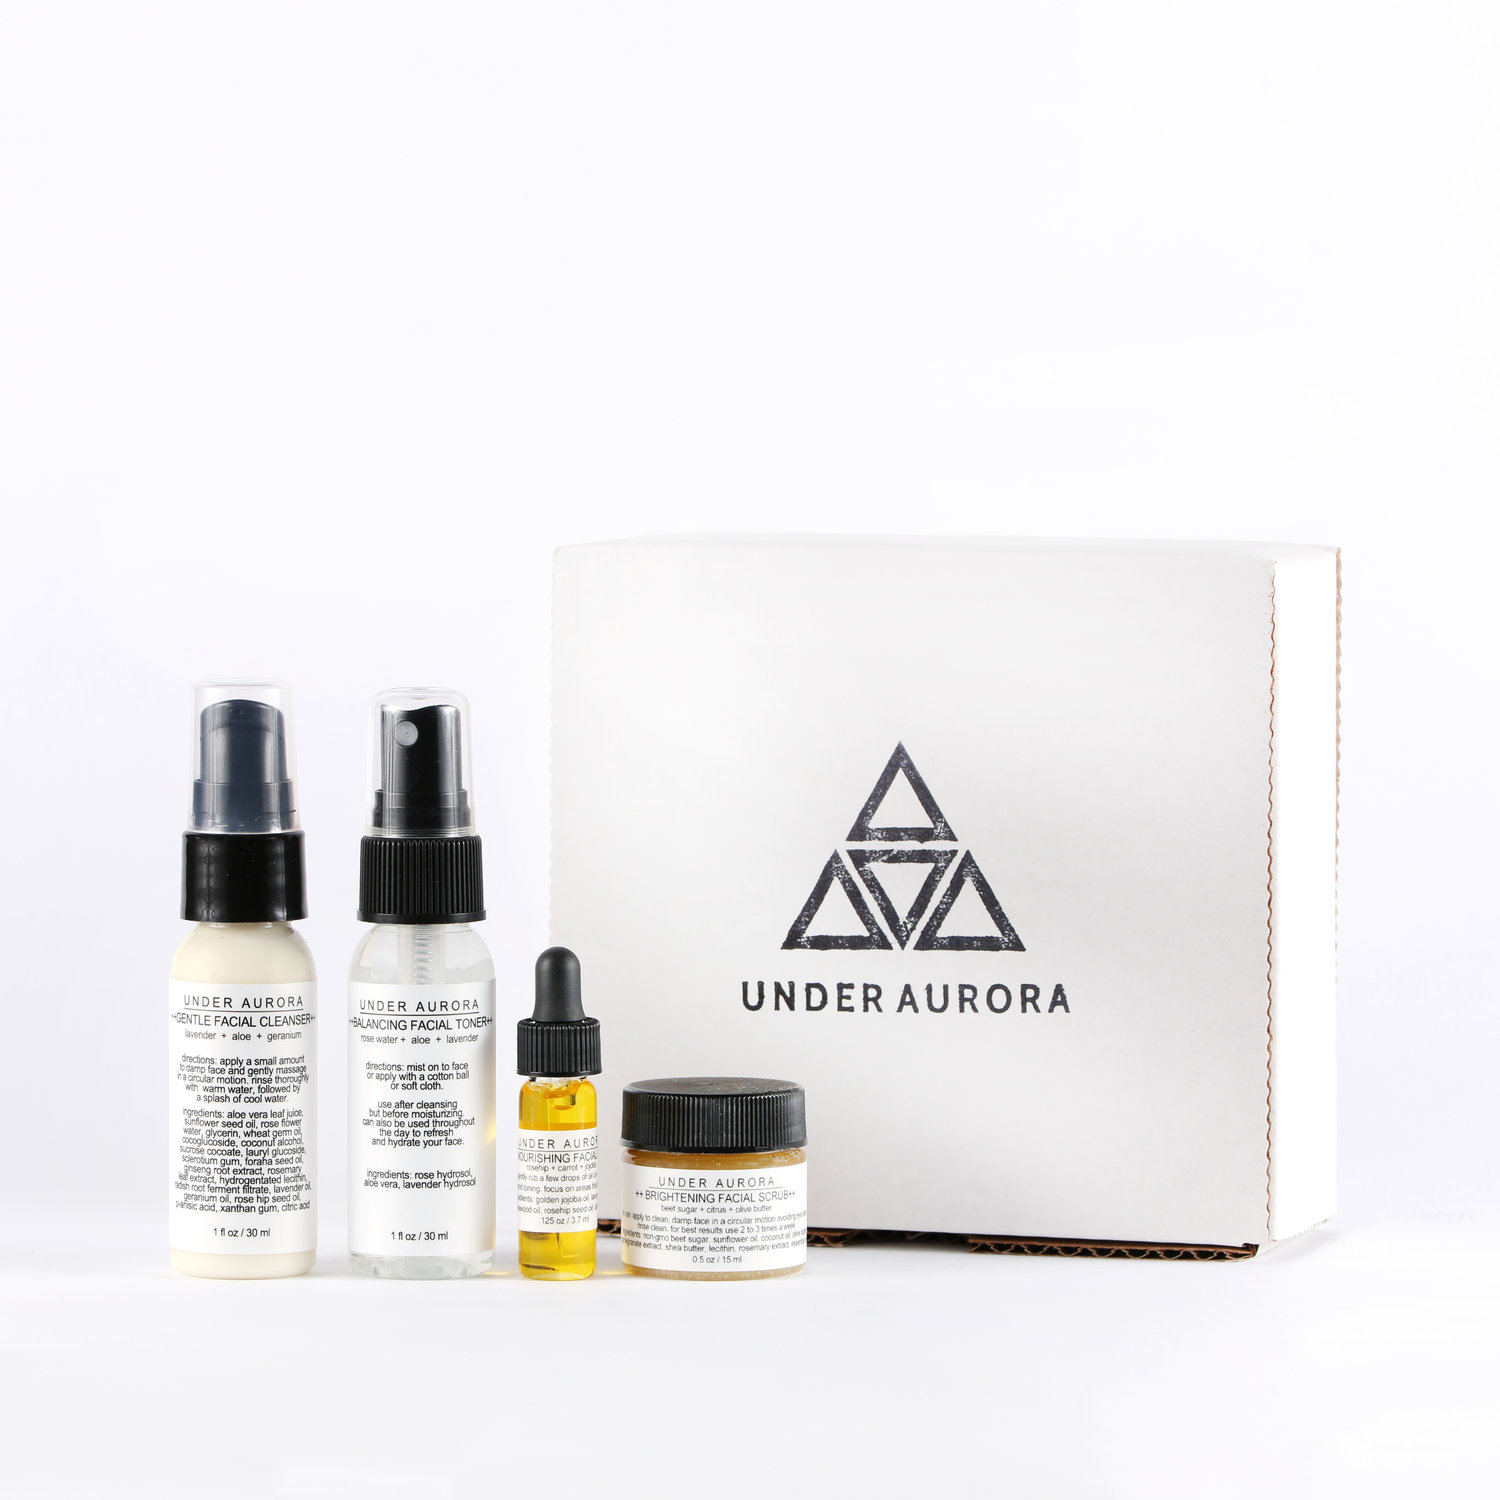 Under Aurora is one of my favorite natural skincare brands these days. I love the nourishing facial oil the best! The  Facial Care Trial Set  is such a lovely gift at a great price.